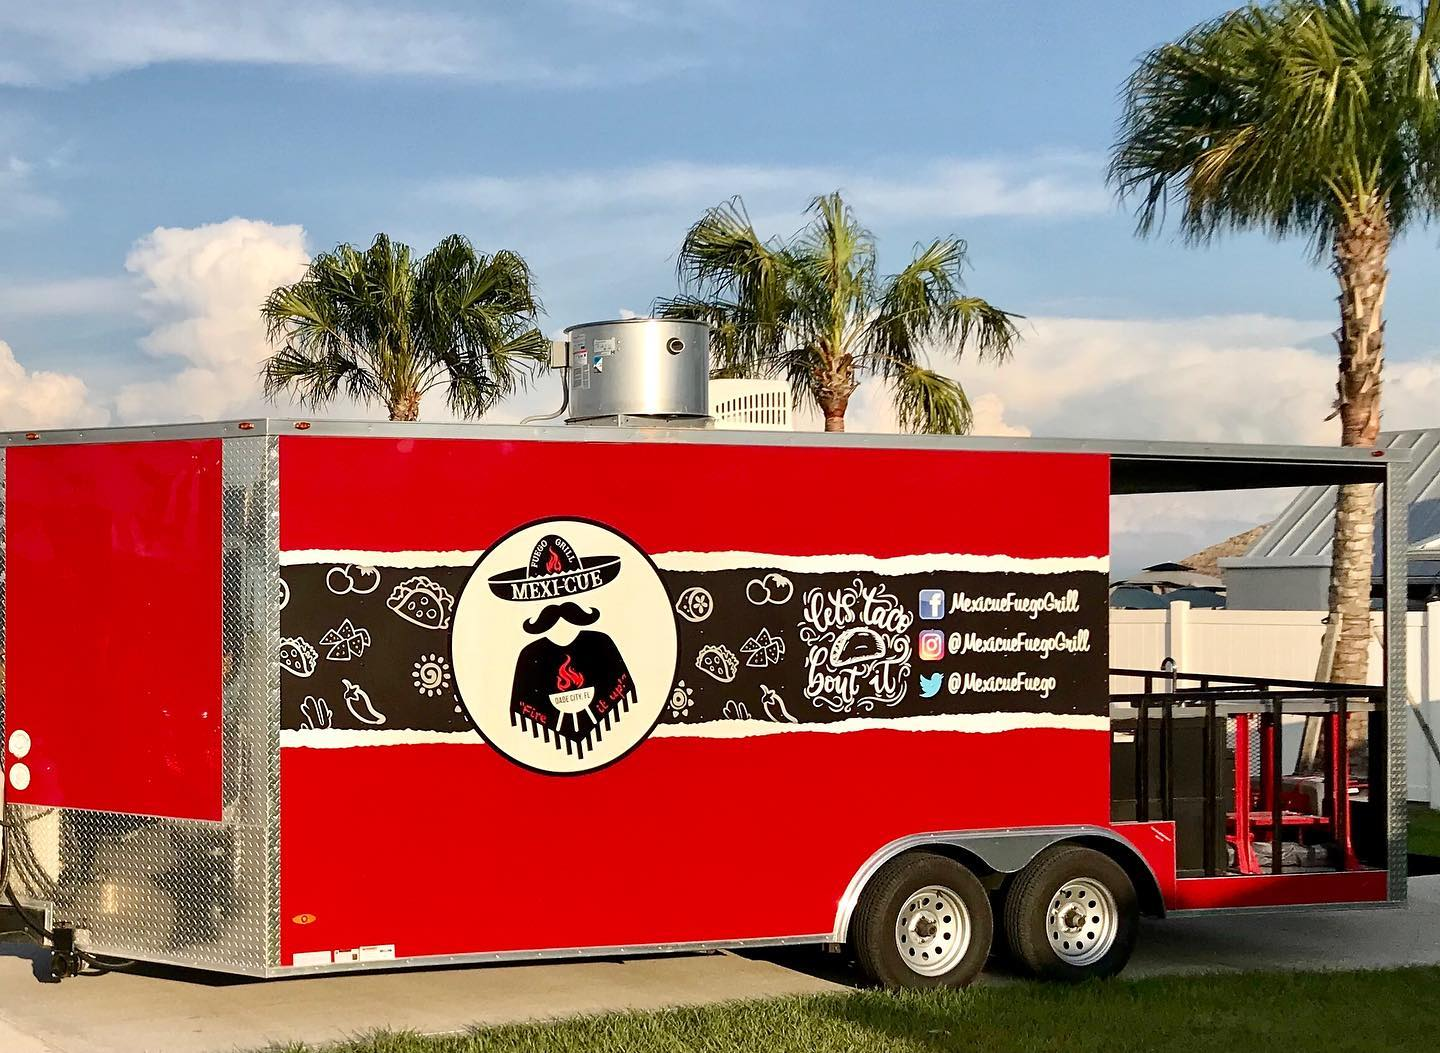 Mexican Food Near Me. A photo the Mexi-Cue Truck